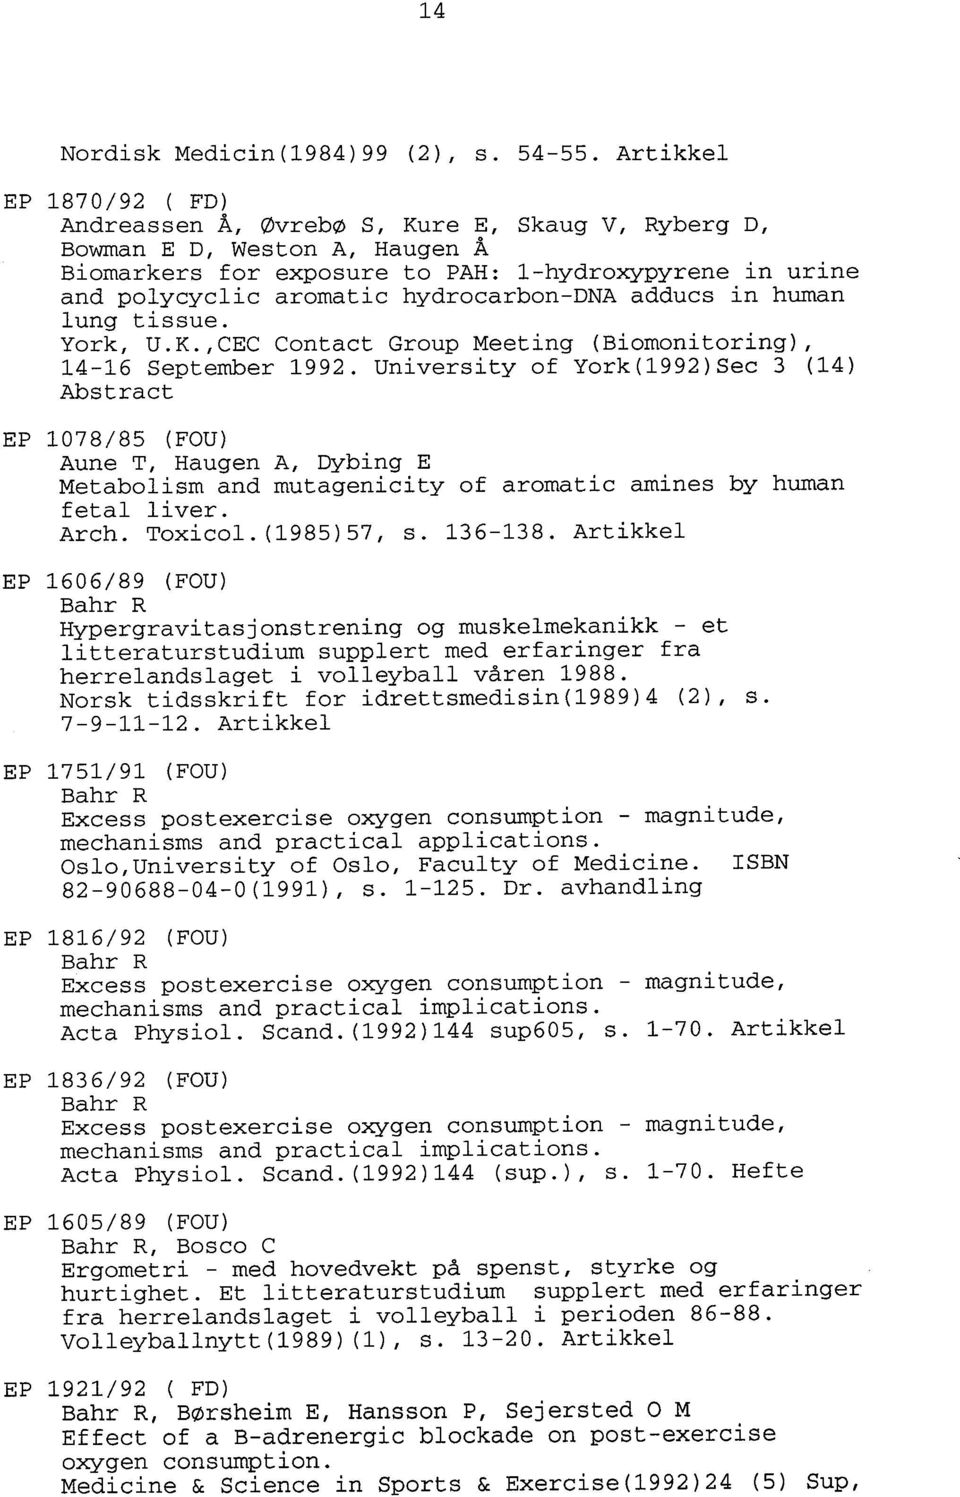 hydrocarbon-dna adducs in human lung tissue. York, U.K.,CEC Contact Group Meeting (Biomonitoring), 14-16 September 1992.